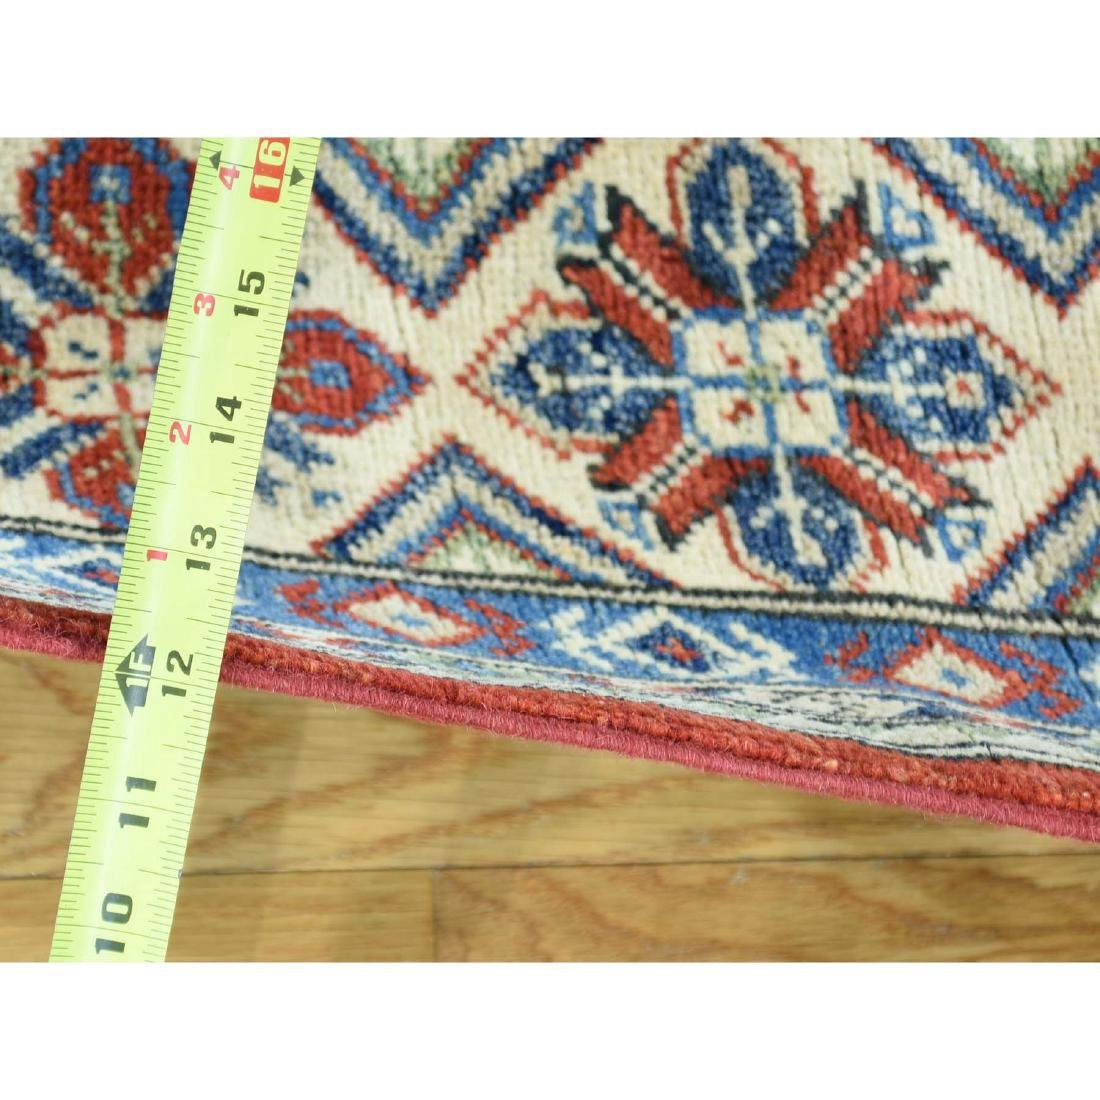 Hand-Knotted Kazak Square Tribal Design Rug 6.7x6.7 - 3